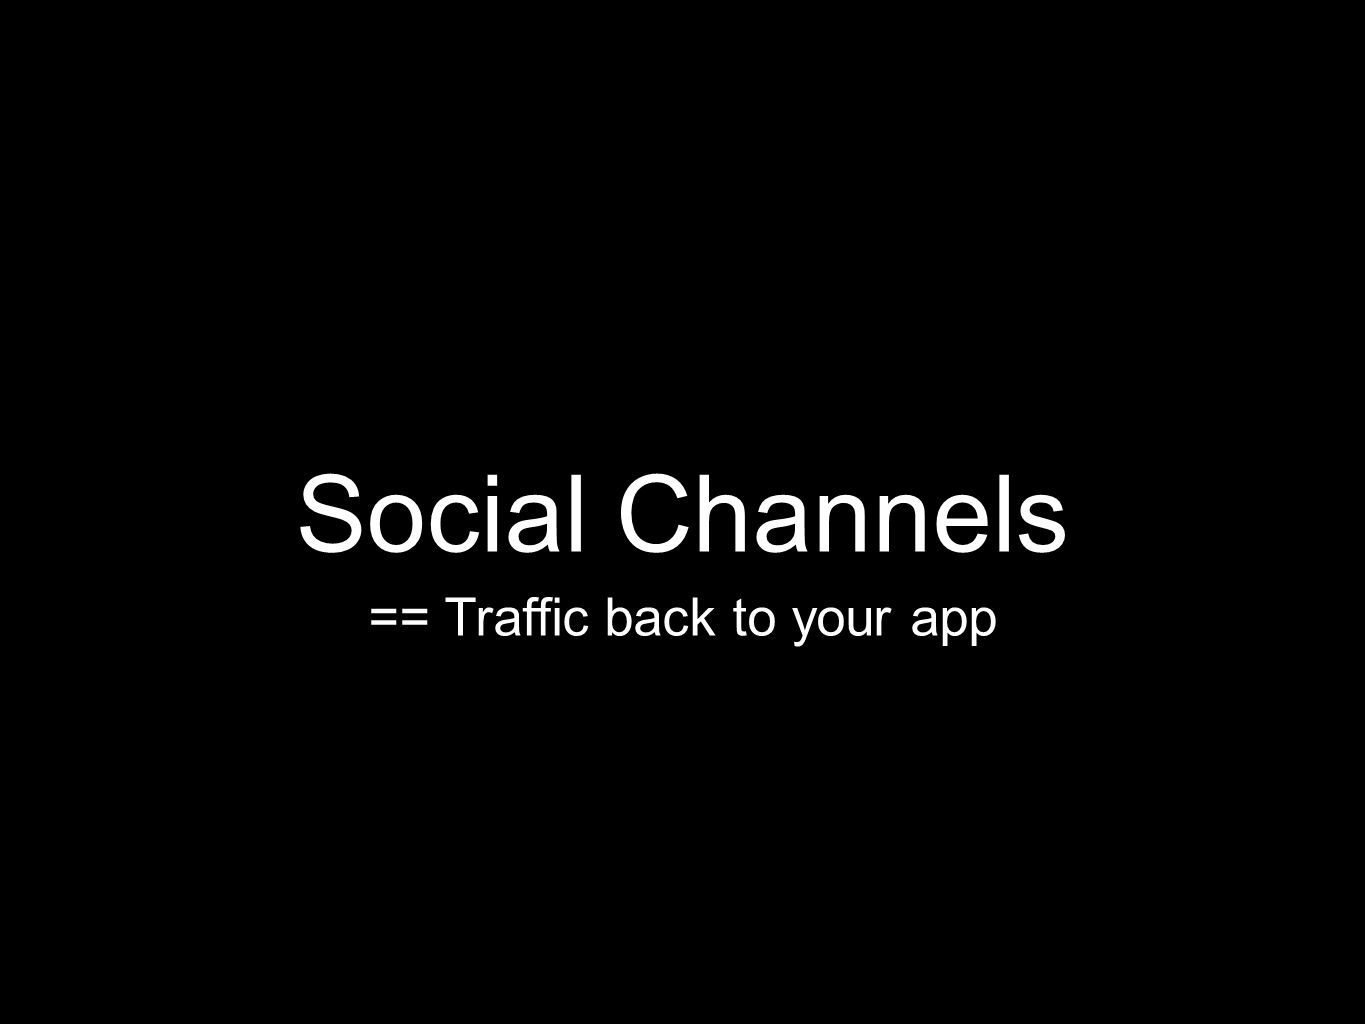 Social Channels == Traffic back to your app